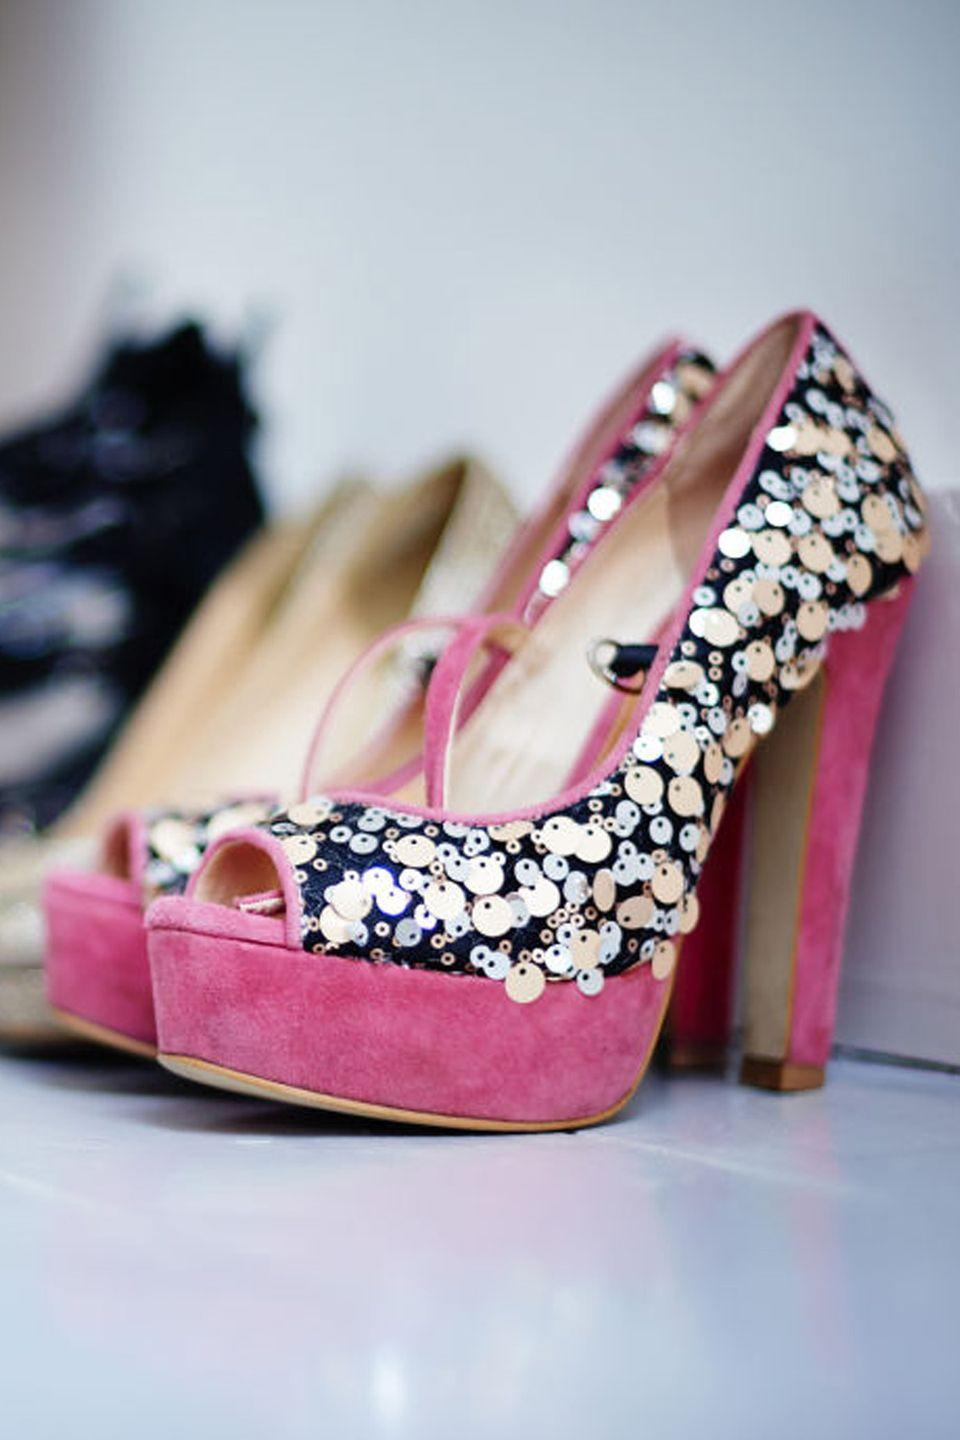 "<p>They may be cute, but, boy, do they hurt. Organize a clothing swap with friends to see if there's a Cinderella who doesn't find peep-toe platforms torturous. And no, you're not imagining things if you find many styles of <a href=""https://www.goodhousekeeping.com/beauty/fashion/news/a35858/why-flats-bad-for-your-feet/"" rel=""nofollow noopener"" target=""_blank"" data-ylk=""slk:flats to be just as bad"" class=""link rapid-noclick-resp"">flats to be just as bad</a>.</p>"